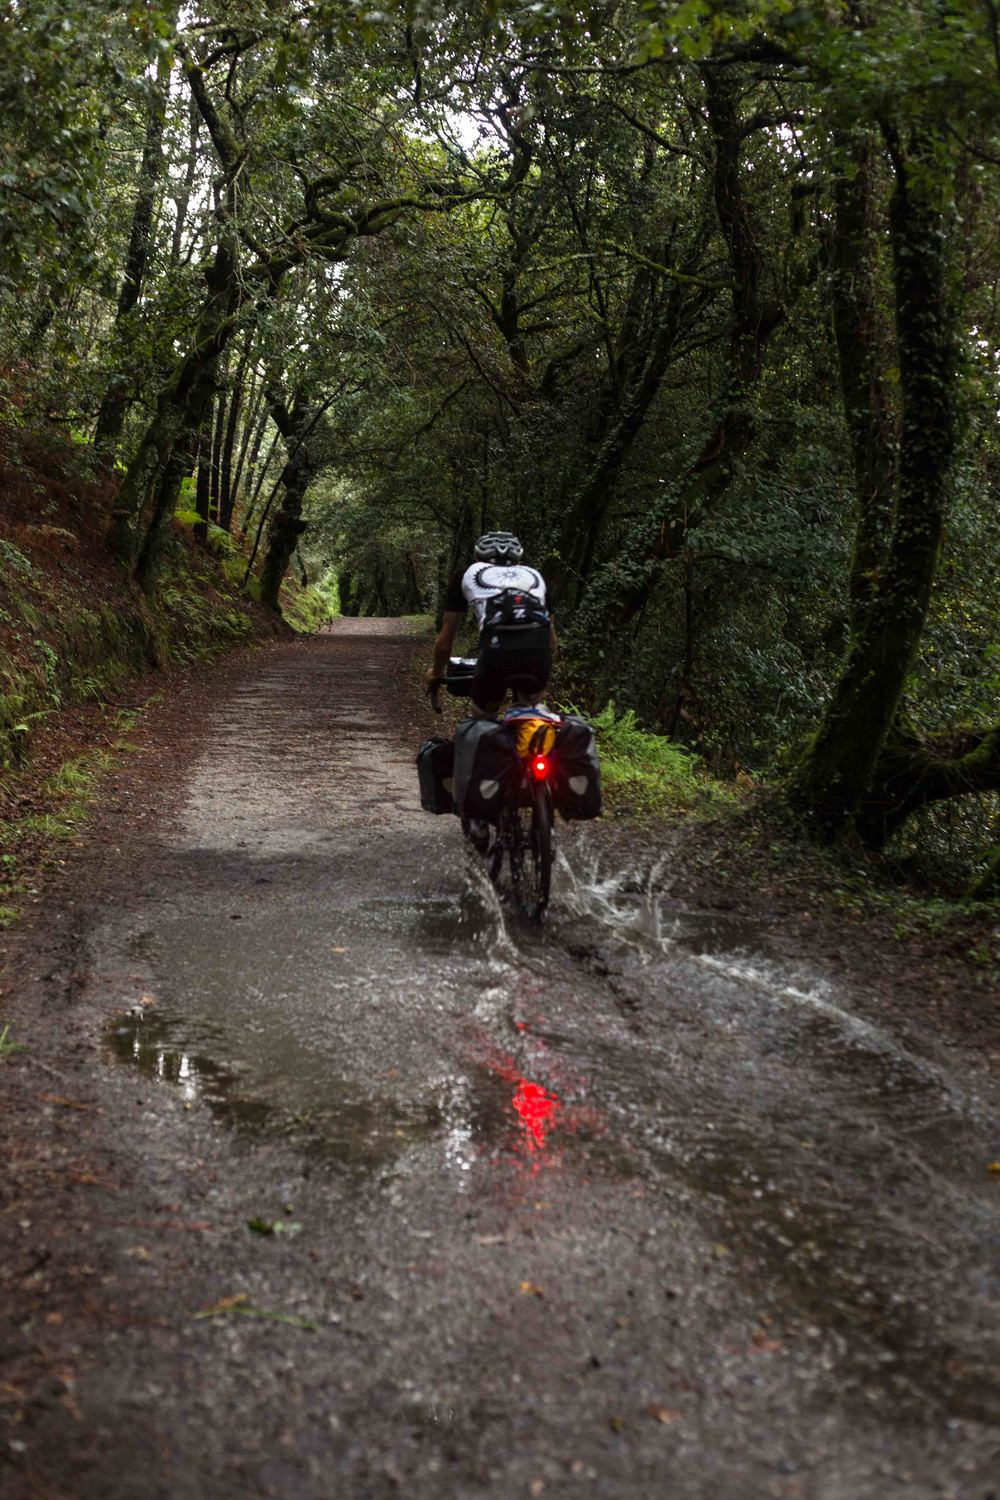 The Fly6 light/camera flashing in the mud as Keagan powers through the Camino.